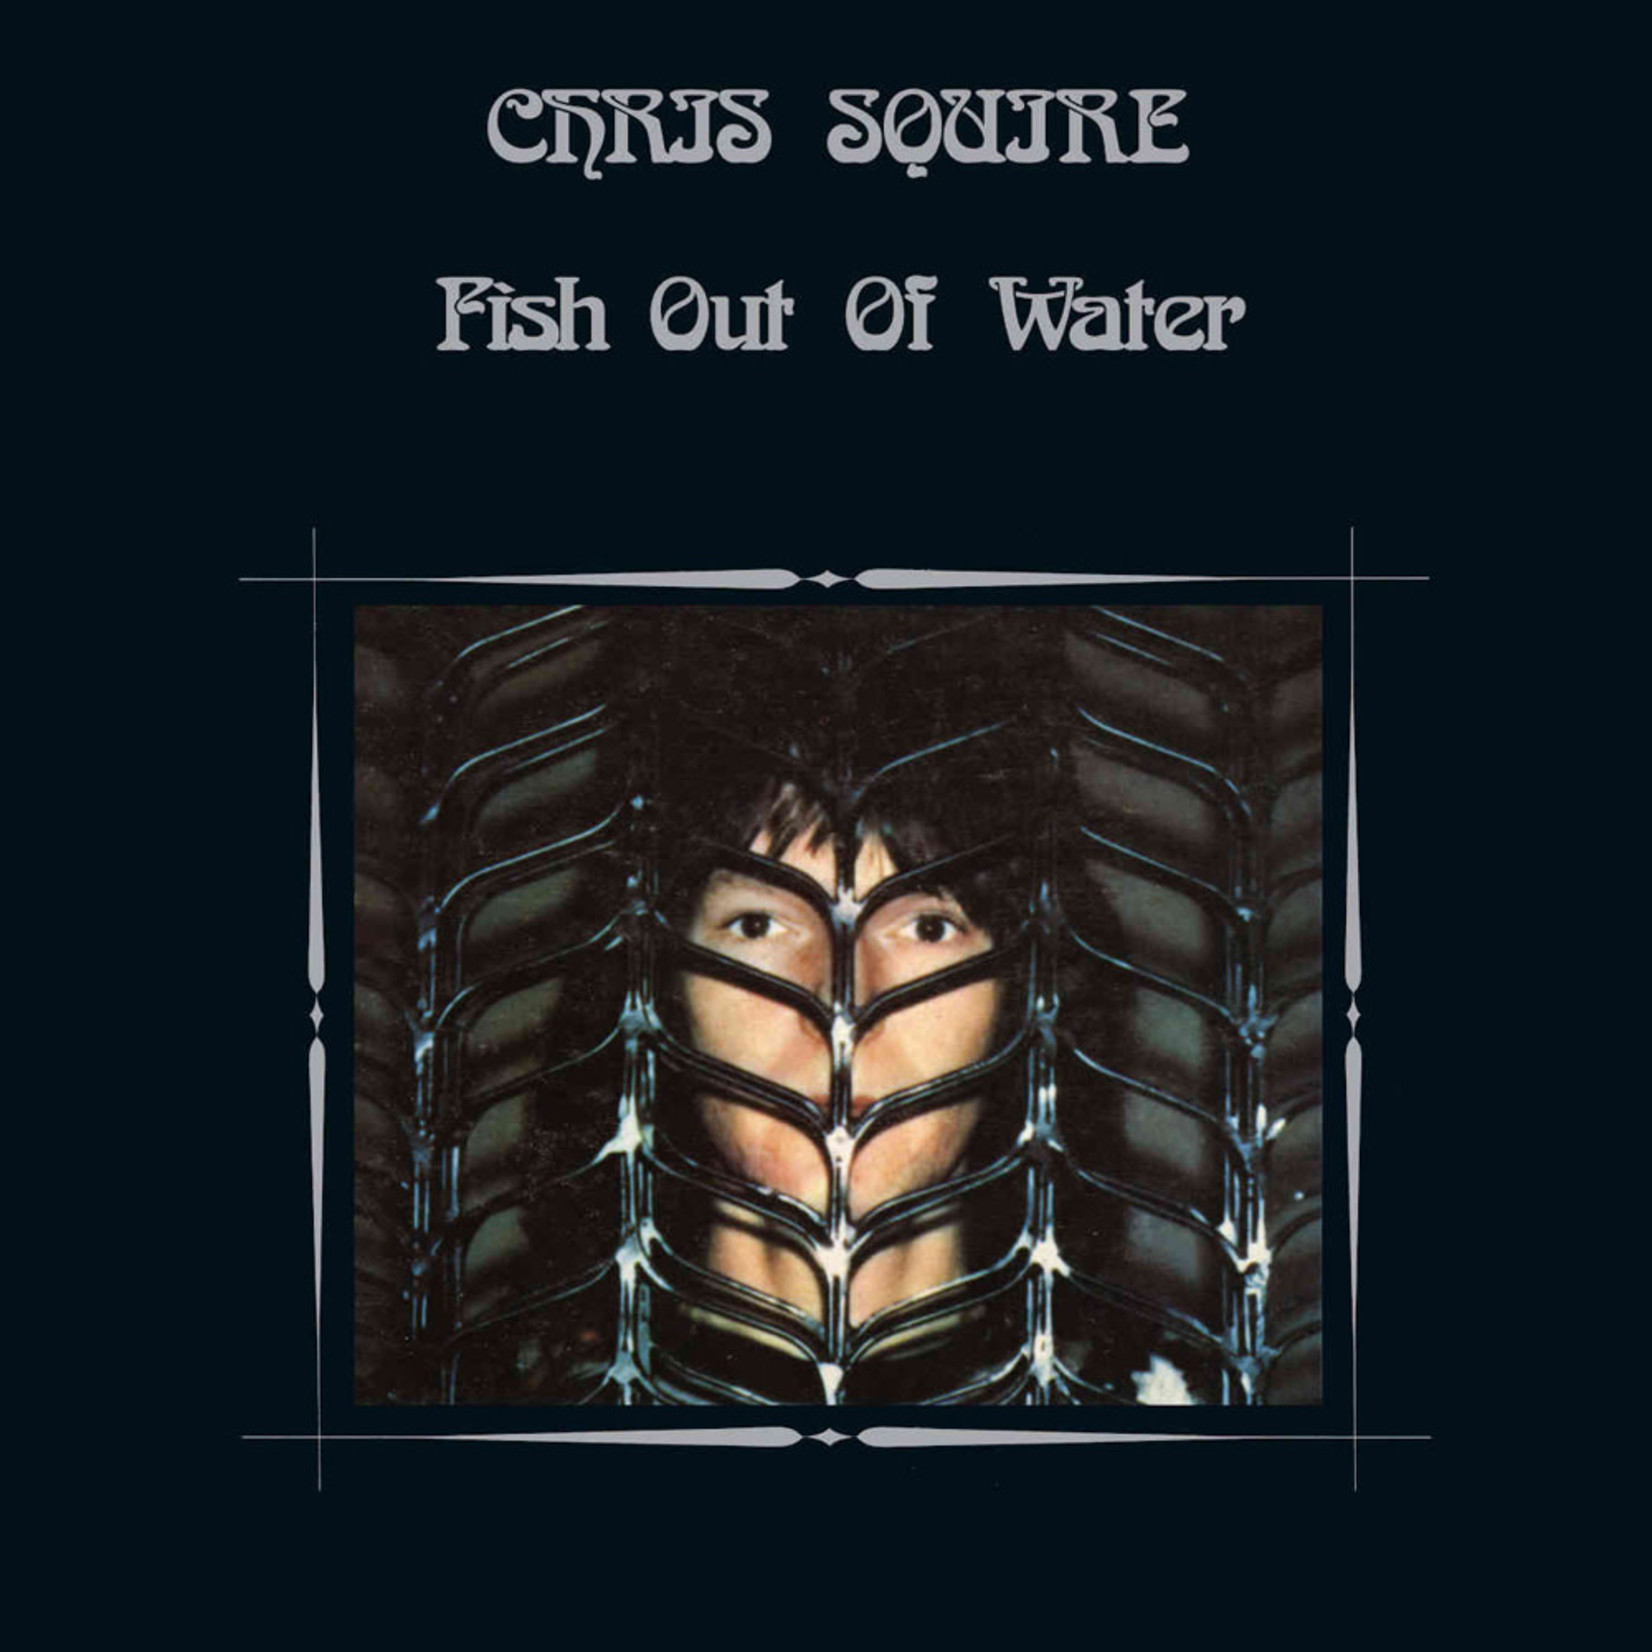 [Vintage] Squire, Chris (Yes): Fish Out of Water